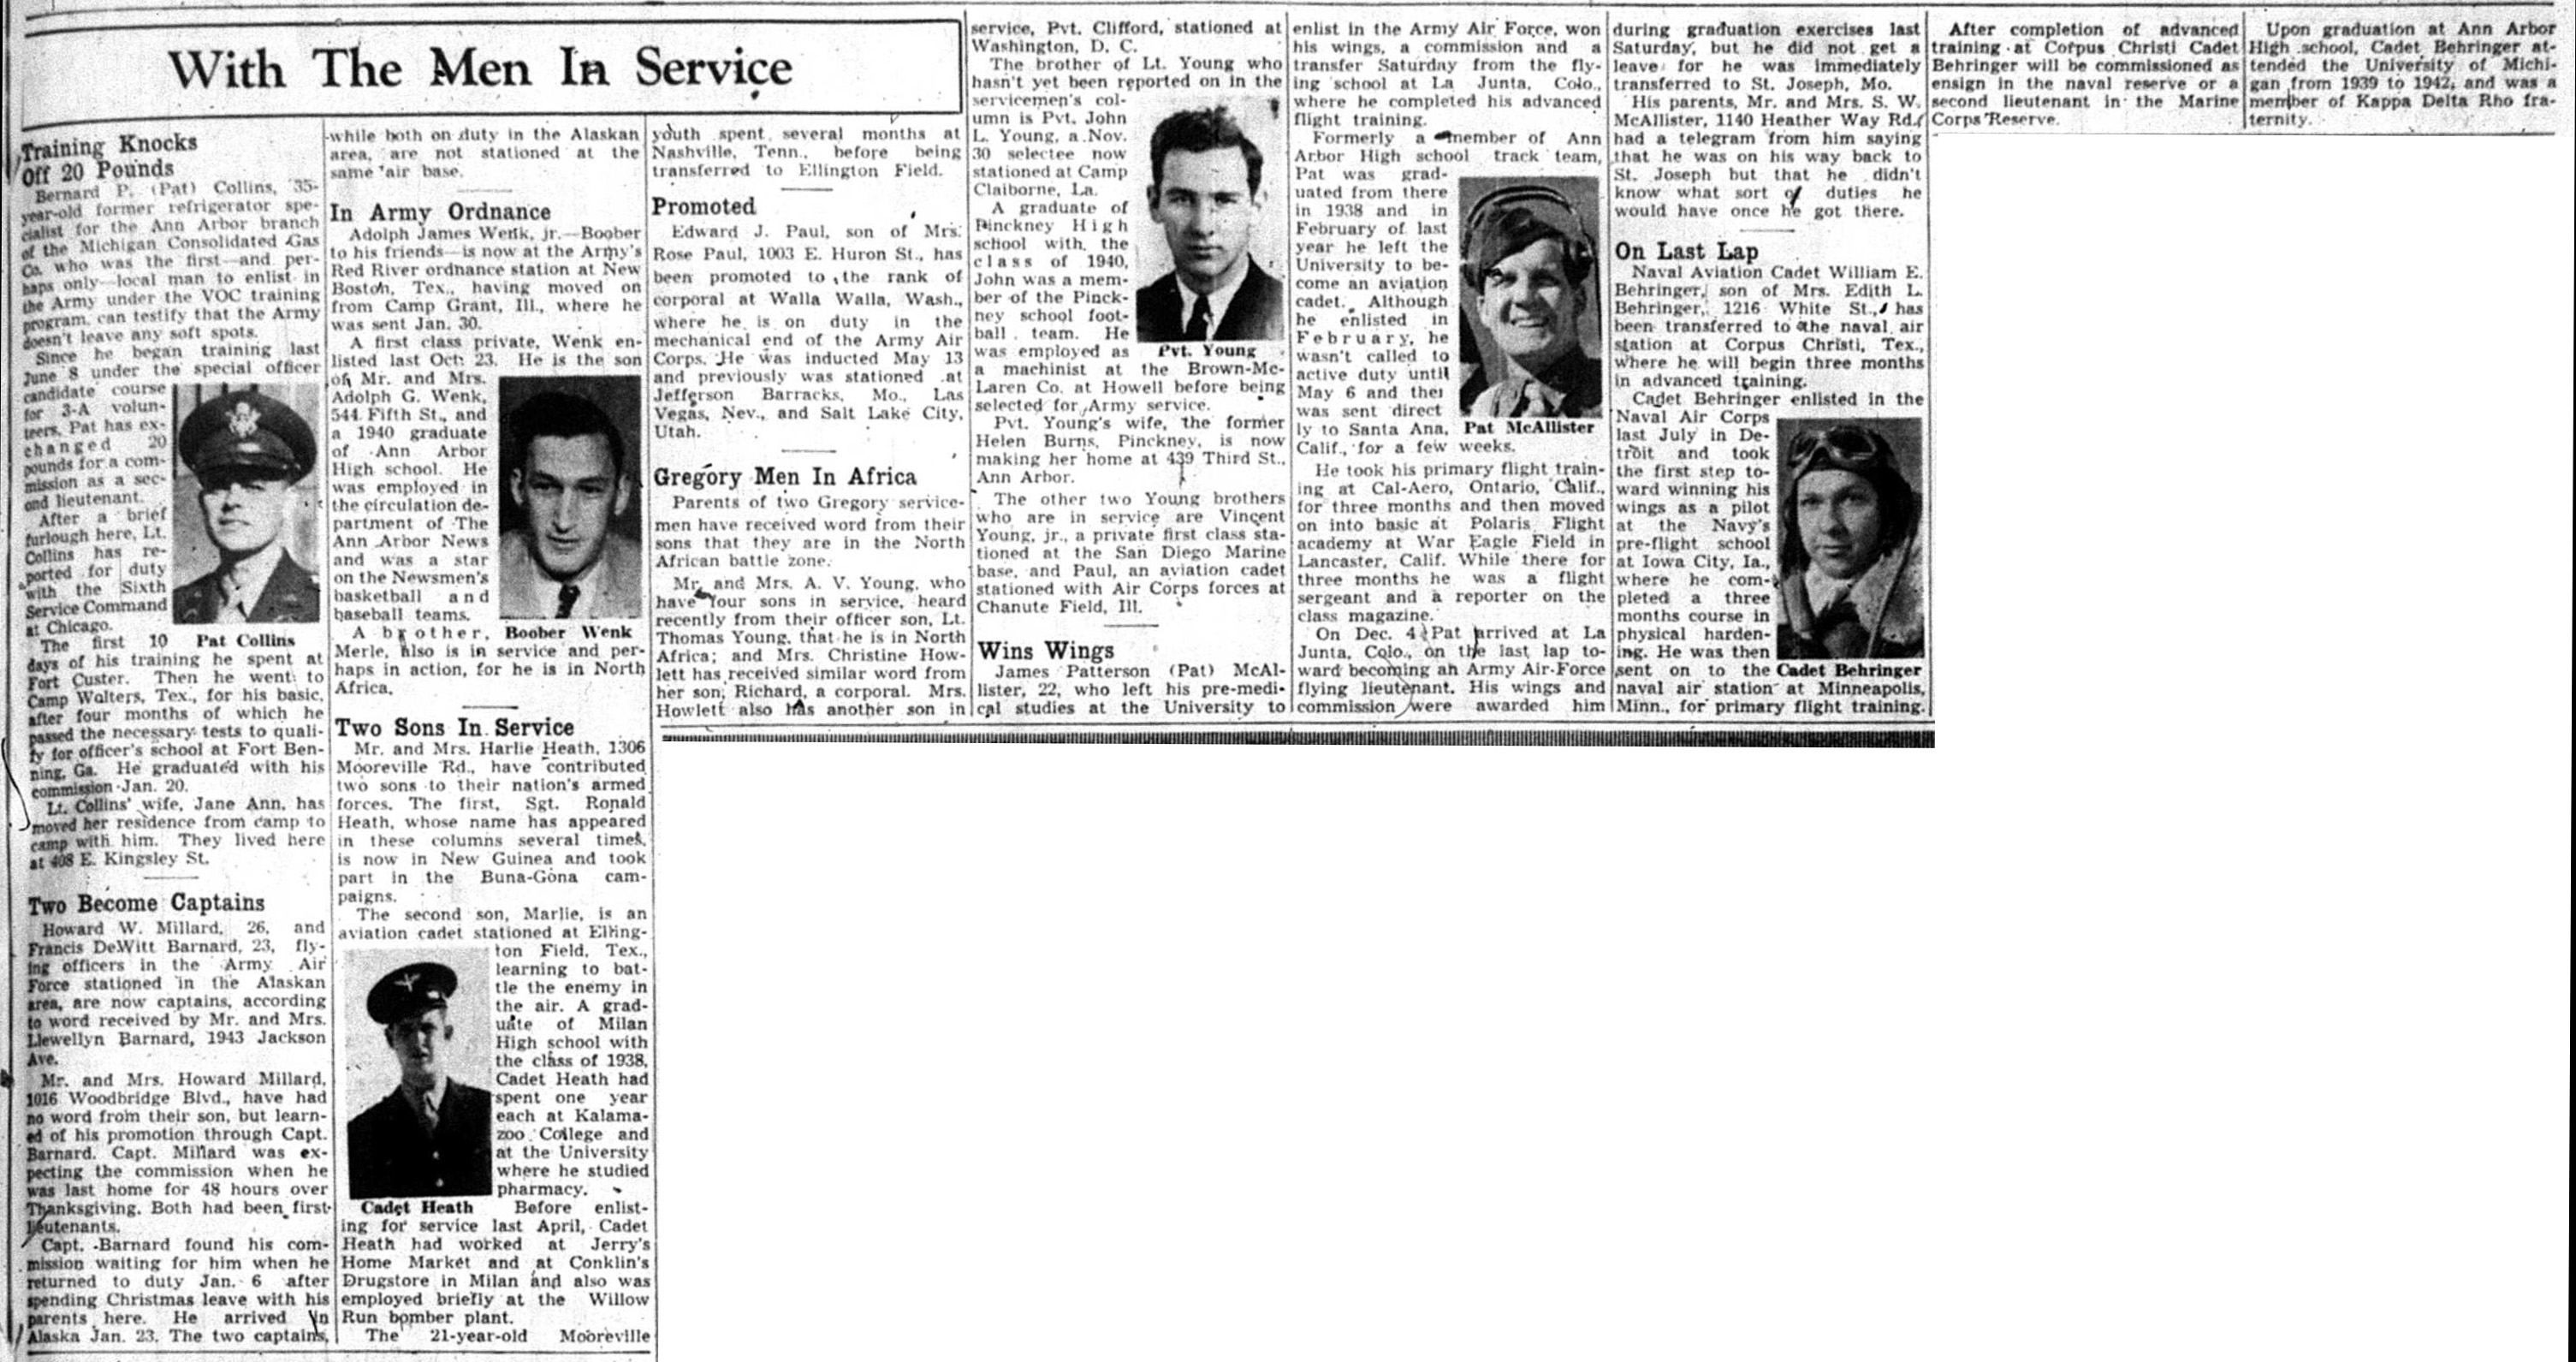 With The Men In Service: February 11, 1943 image